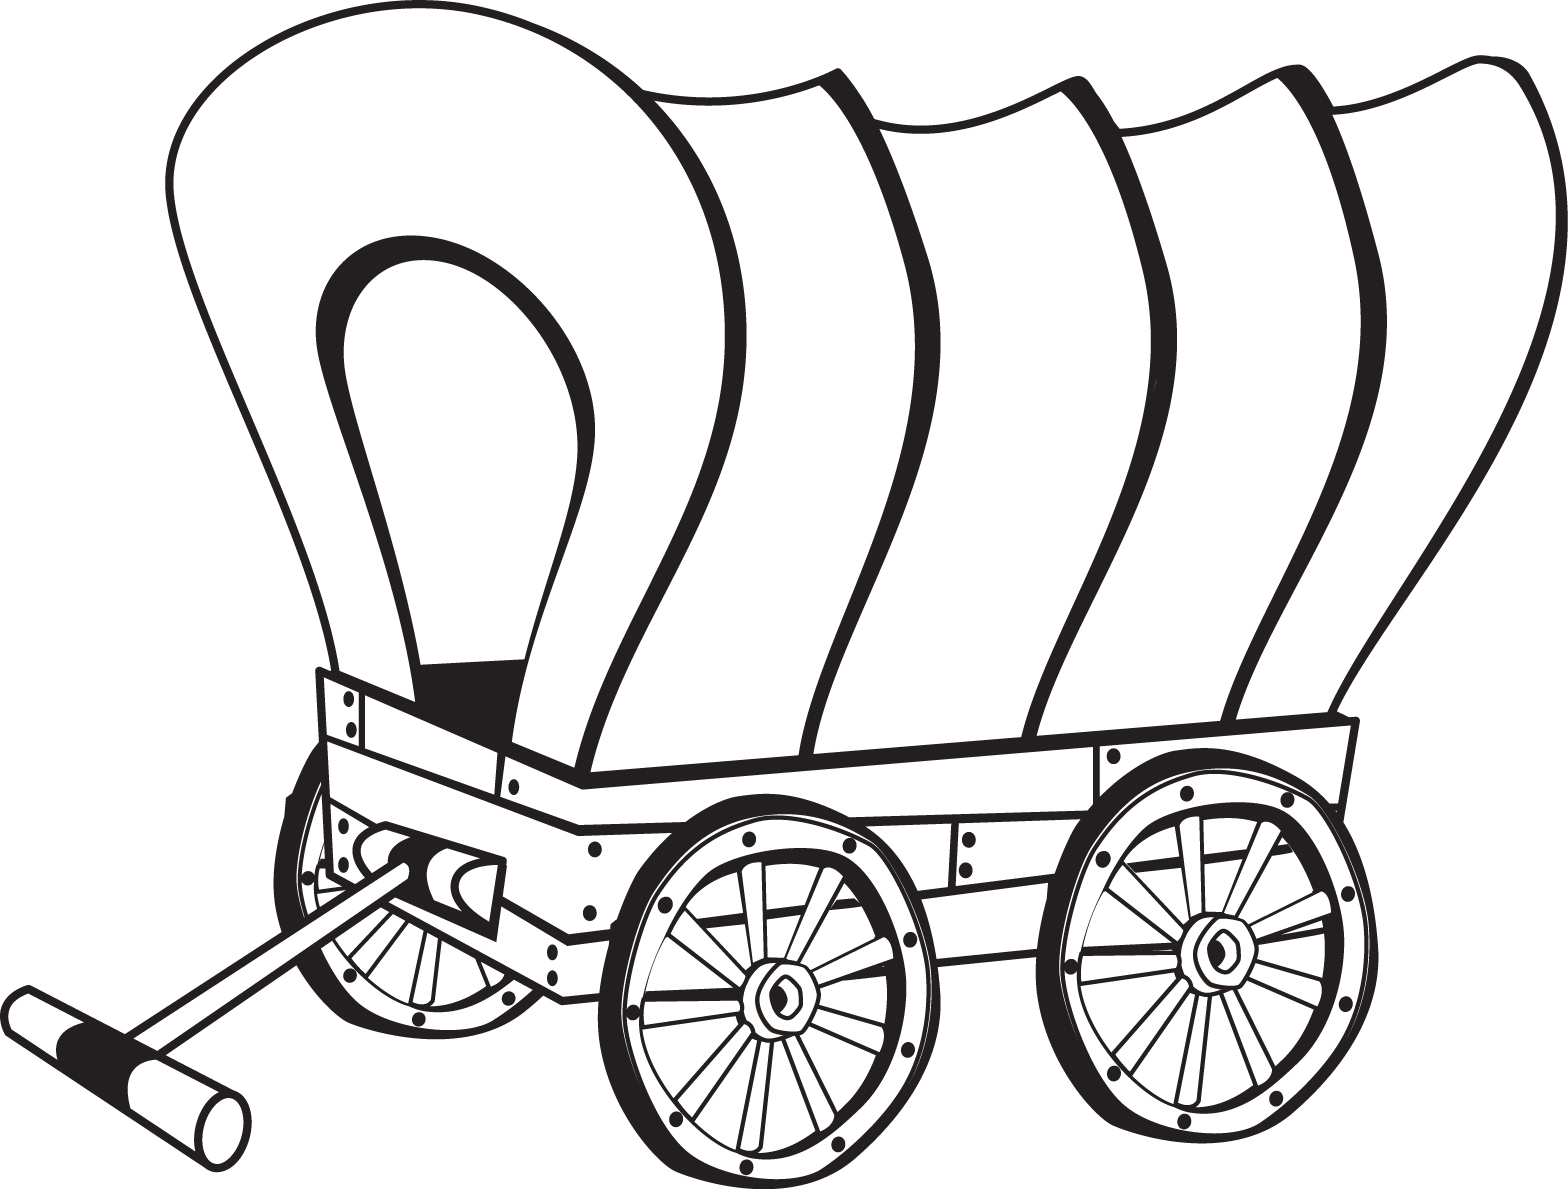 Download Or Print This Amazing Coloring Page Covered Wagon Coloring Page Horse Coloring Pages Coloring Pages Covered Wagon